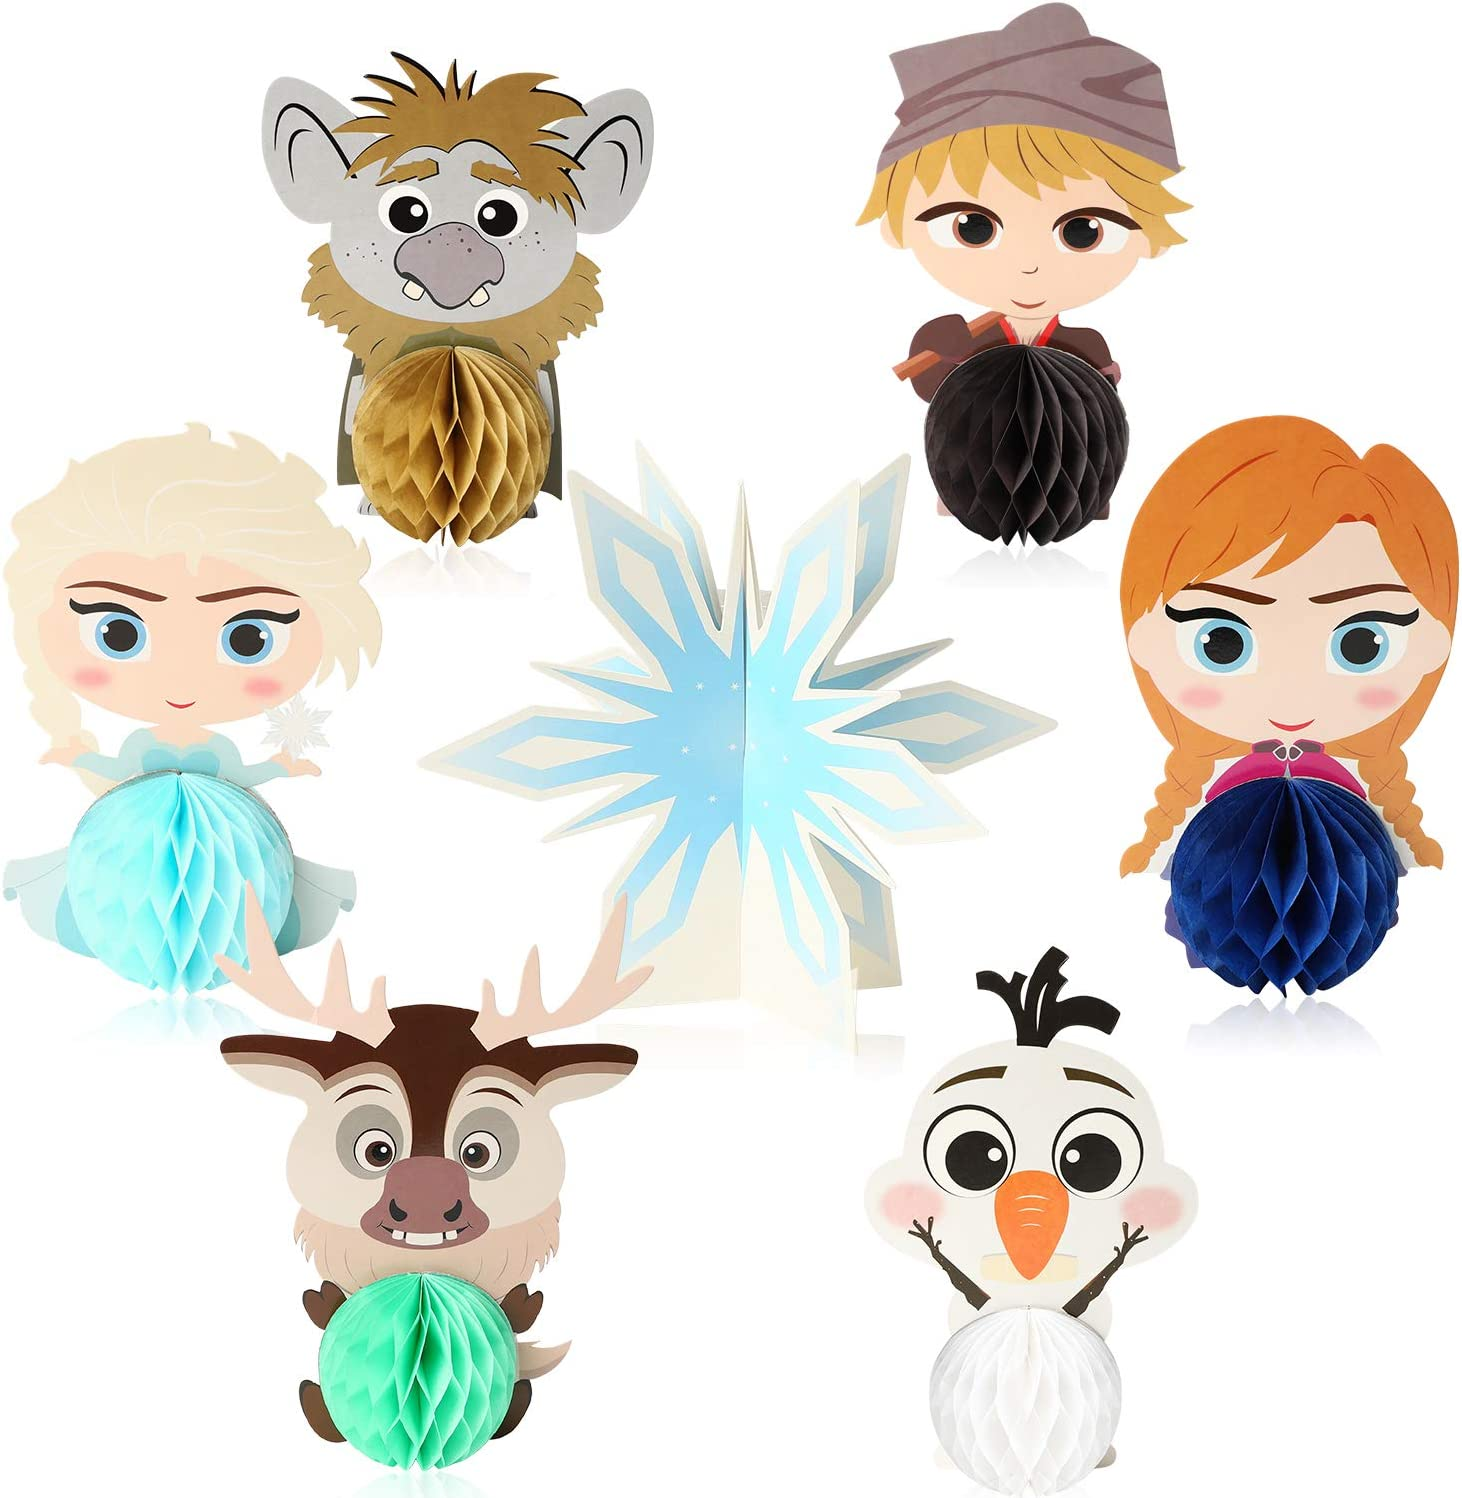 Ticiaga 7pcs Frozen Honeycomb Centerpieces, Table Topper for Girls Birthday Party Decoration, Double Sided Cake Topper Princess Theme Party Supplies for Kids, Photo Booth Props Mix of Elsa, Anna, Olaf